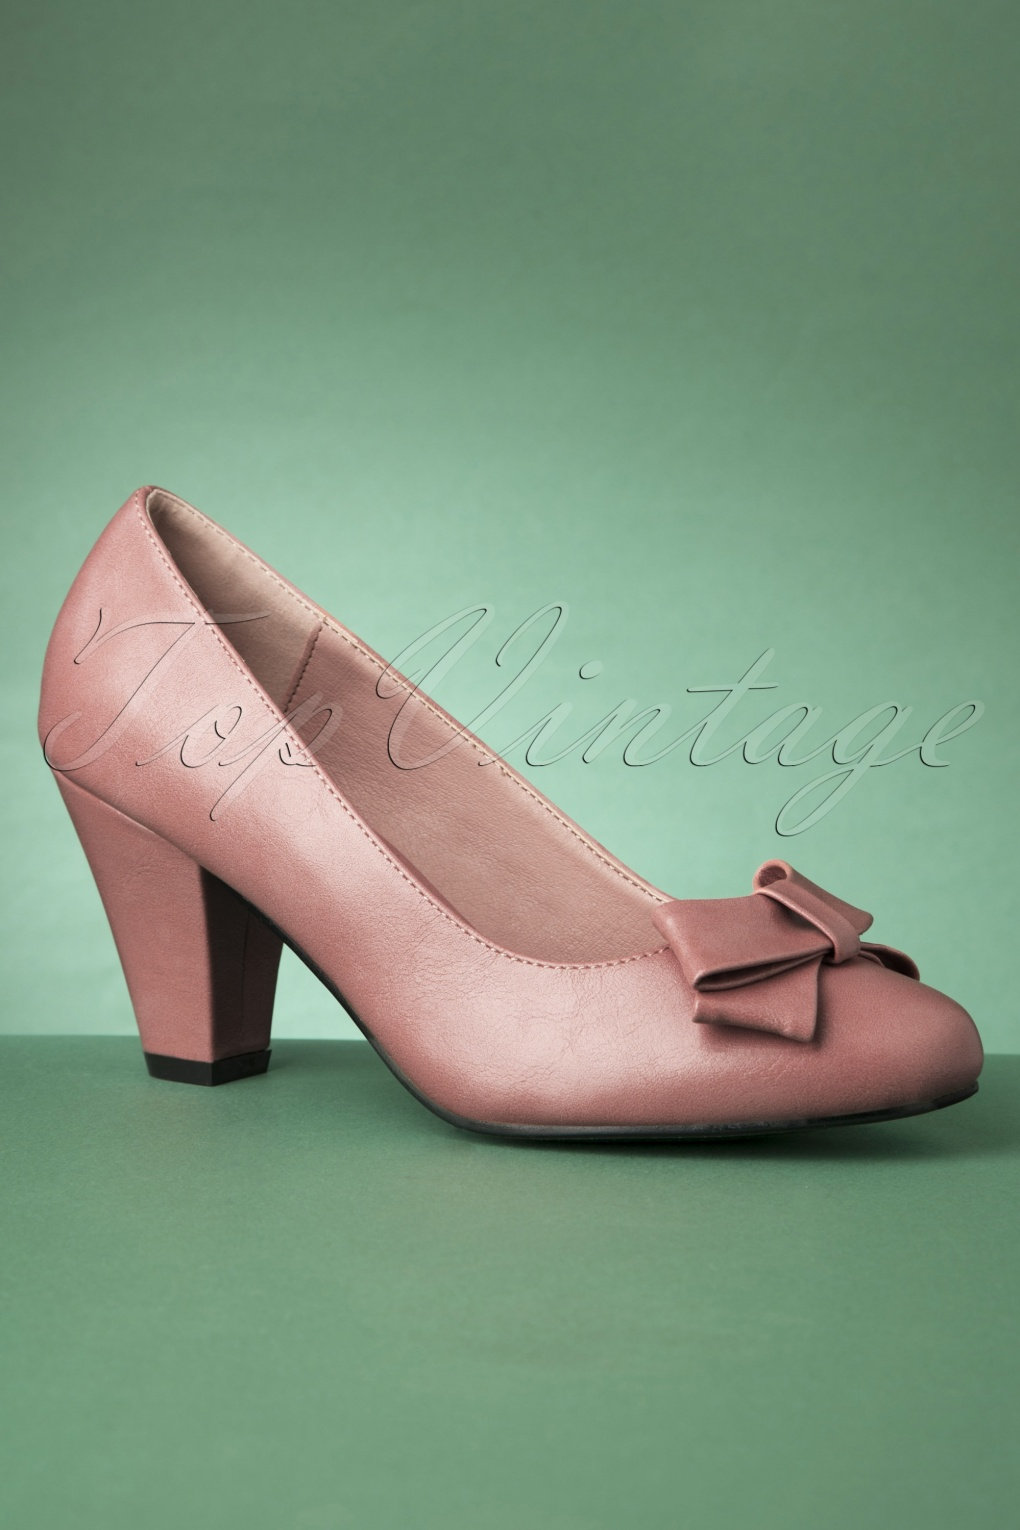 Rockabilly Shoes- Heels, Pumps, Boots, Flats 50s Tracey High Heels in Dusty Pink £45.54 AT vintagedancer.com